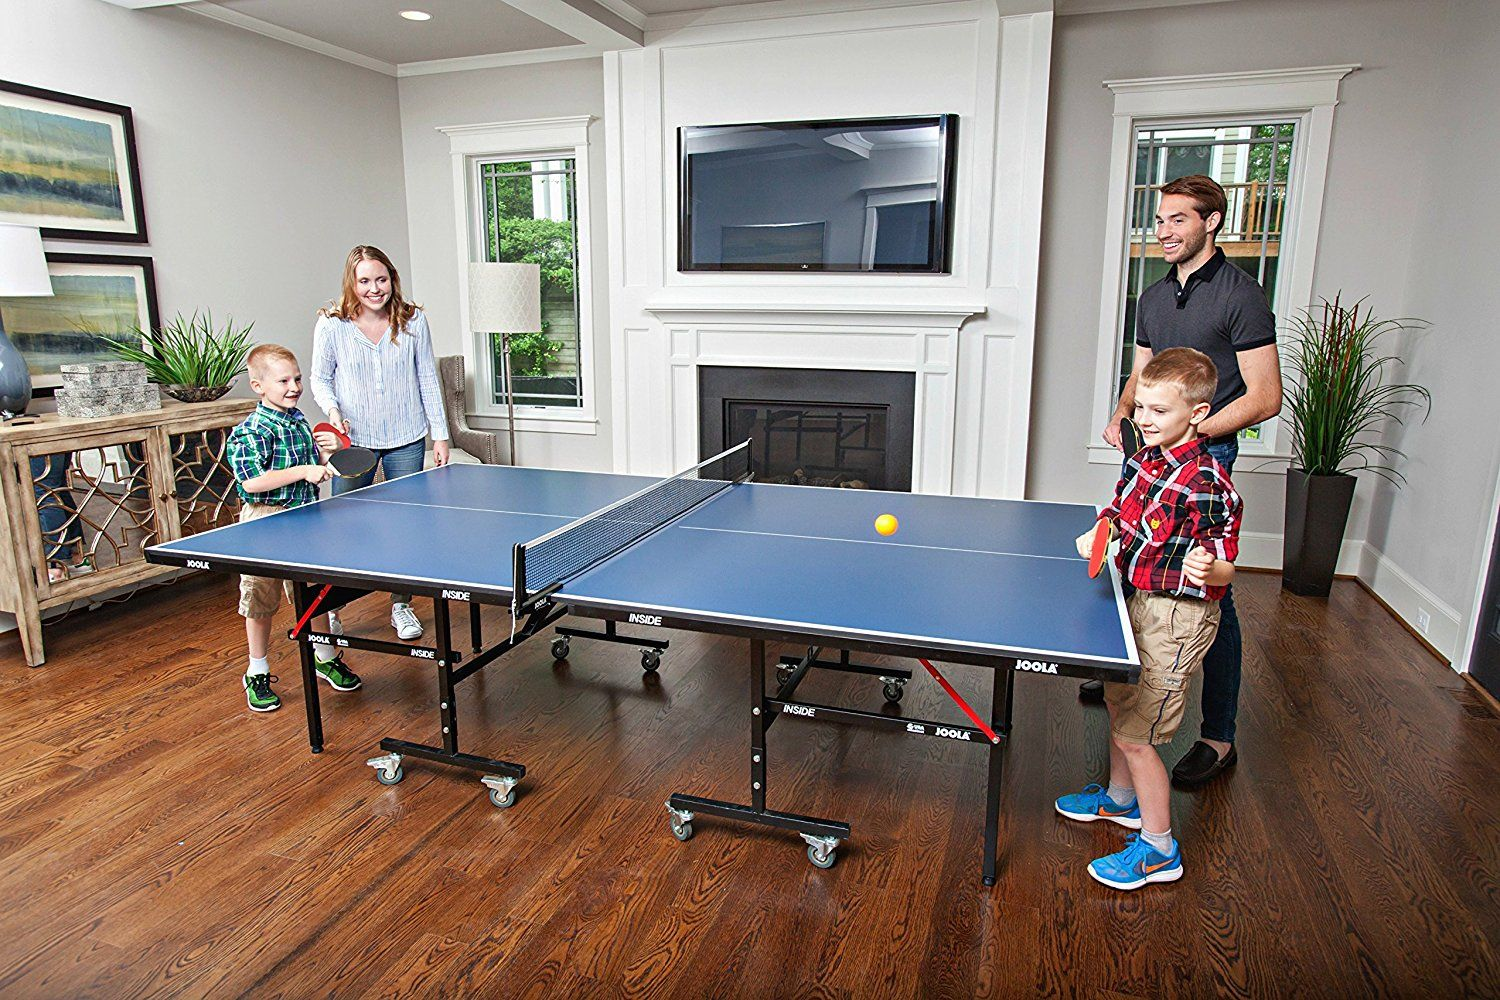 The Best Table Tennis Ping Pong Tables For The House 2019